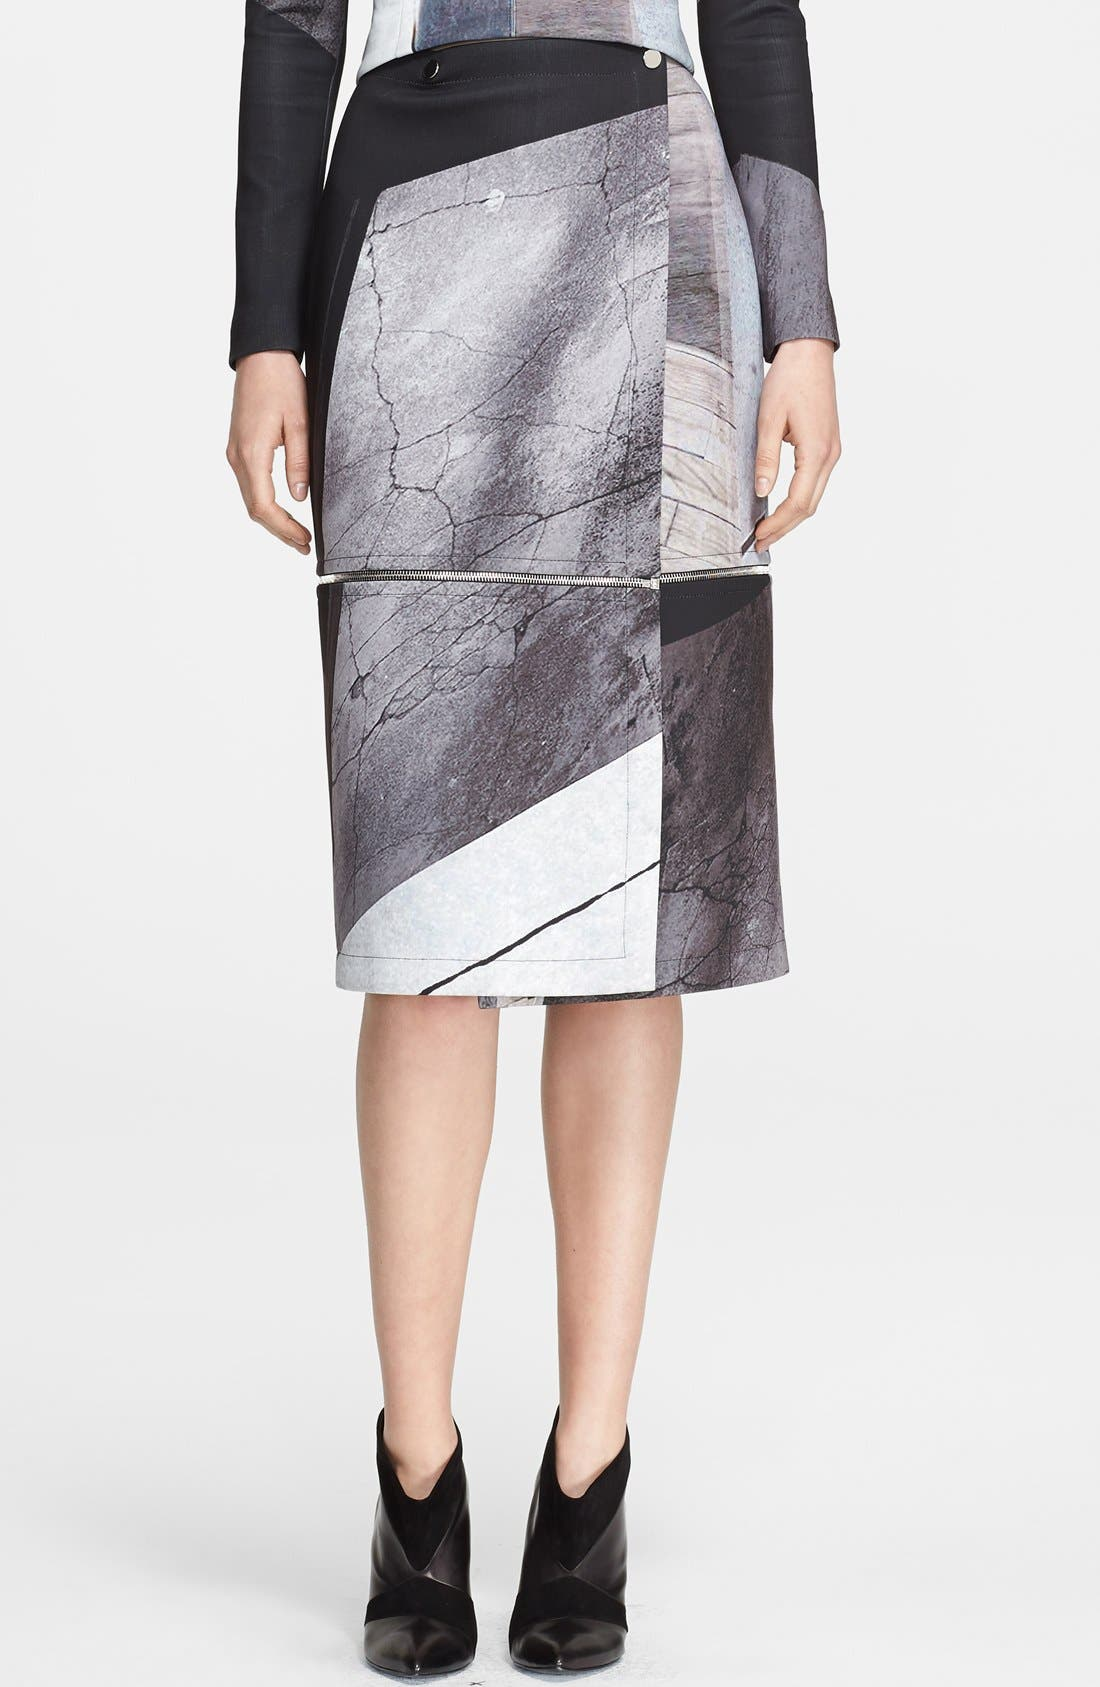 Alternate Image 1 Selected - Yigal Azrouël Print Adjustable Length Skirt